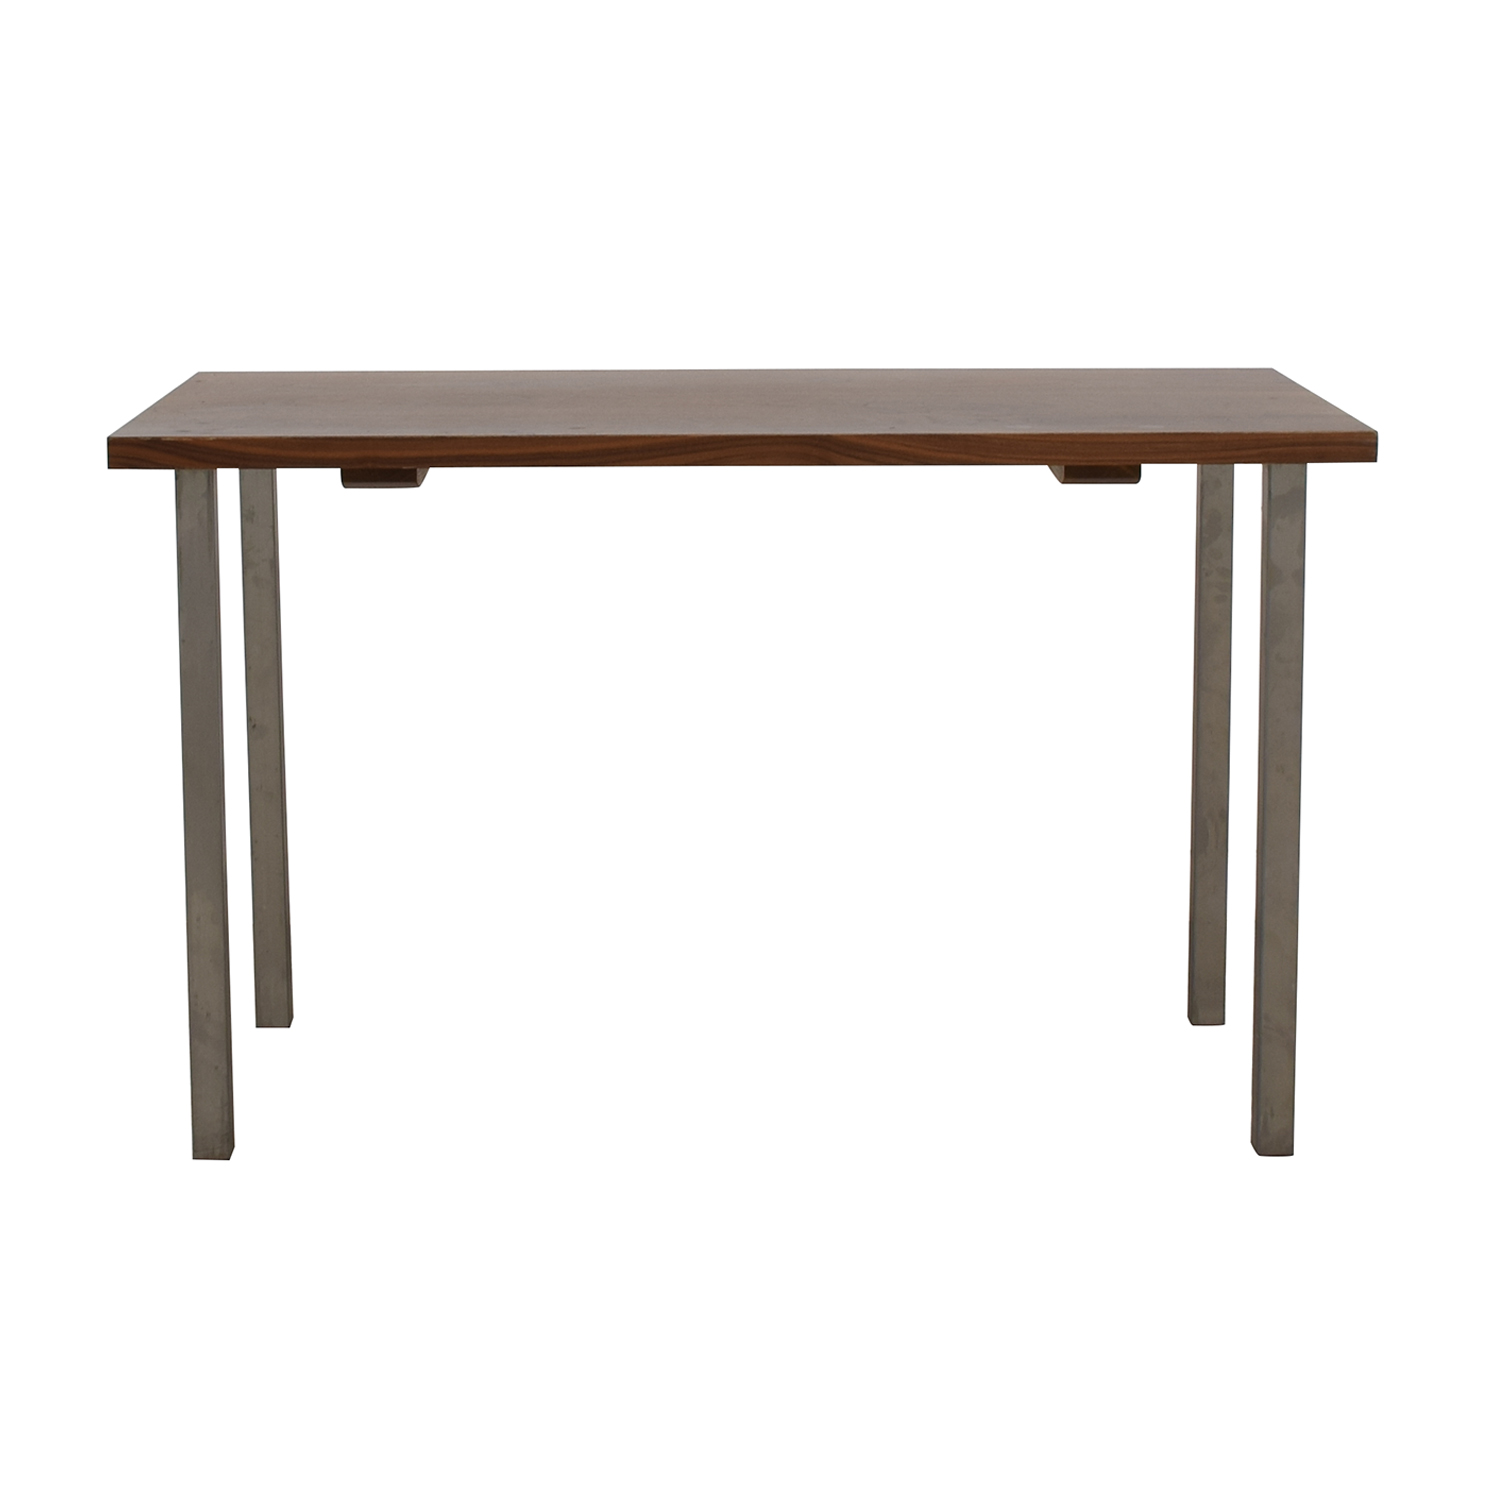 buy Room & Board Rand Natural Wood and Steel Table Room & Board Dinner Tables